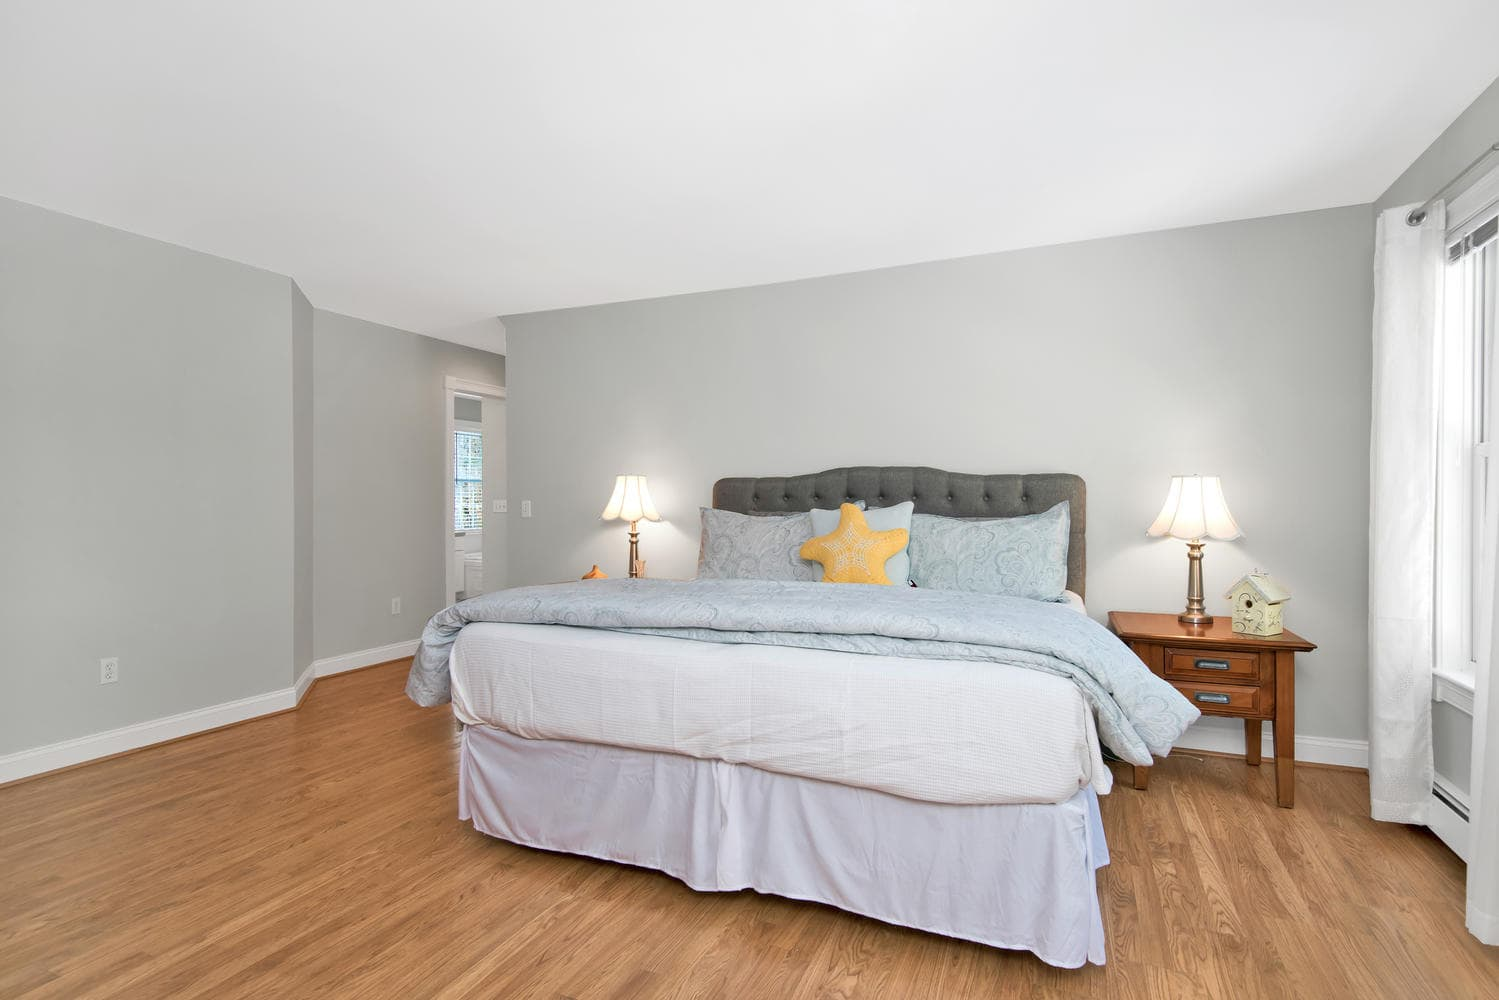 26 Titcomb Field Rd North-large-034-42-Master Bedroom-1499x1000-72dpi.jpg